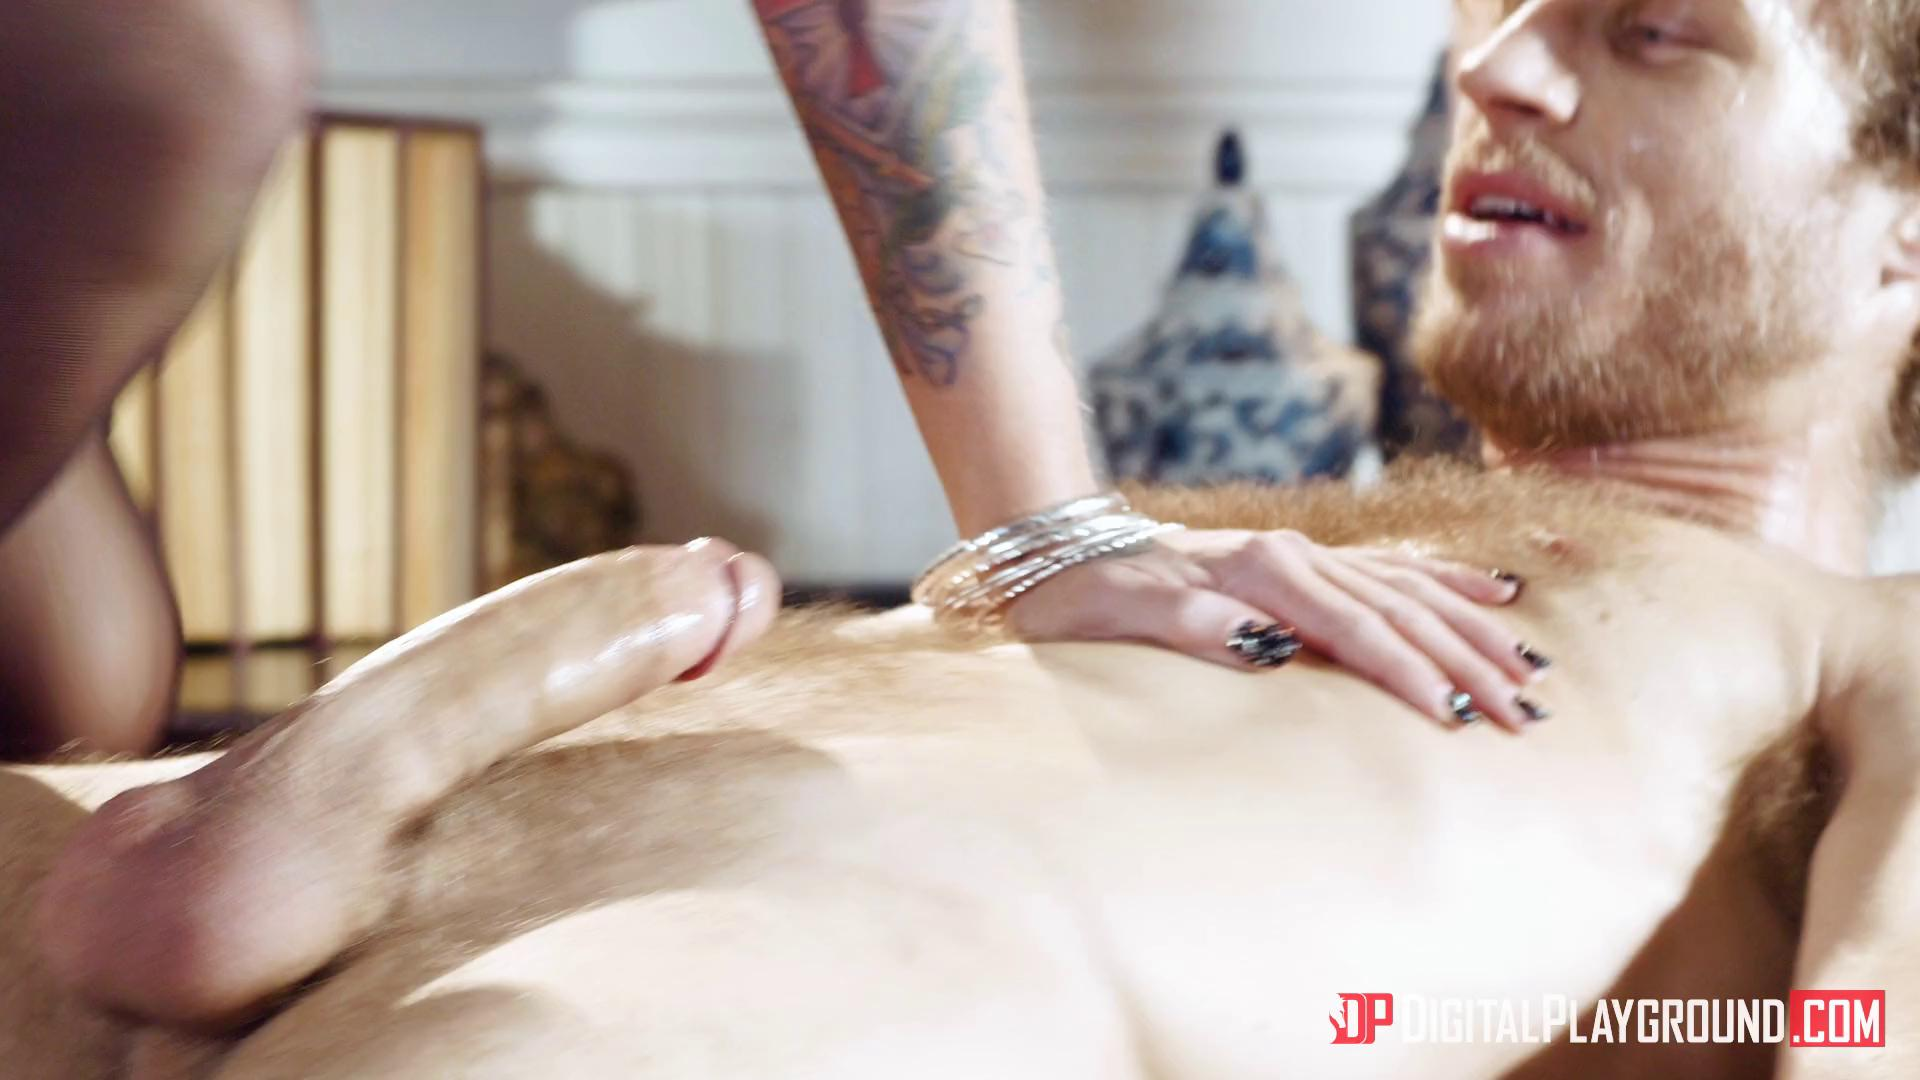 DigitalPlayground – Kleio Valentien Selling His Soul Episode 2